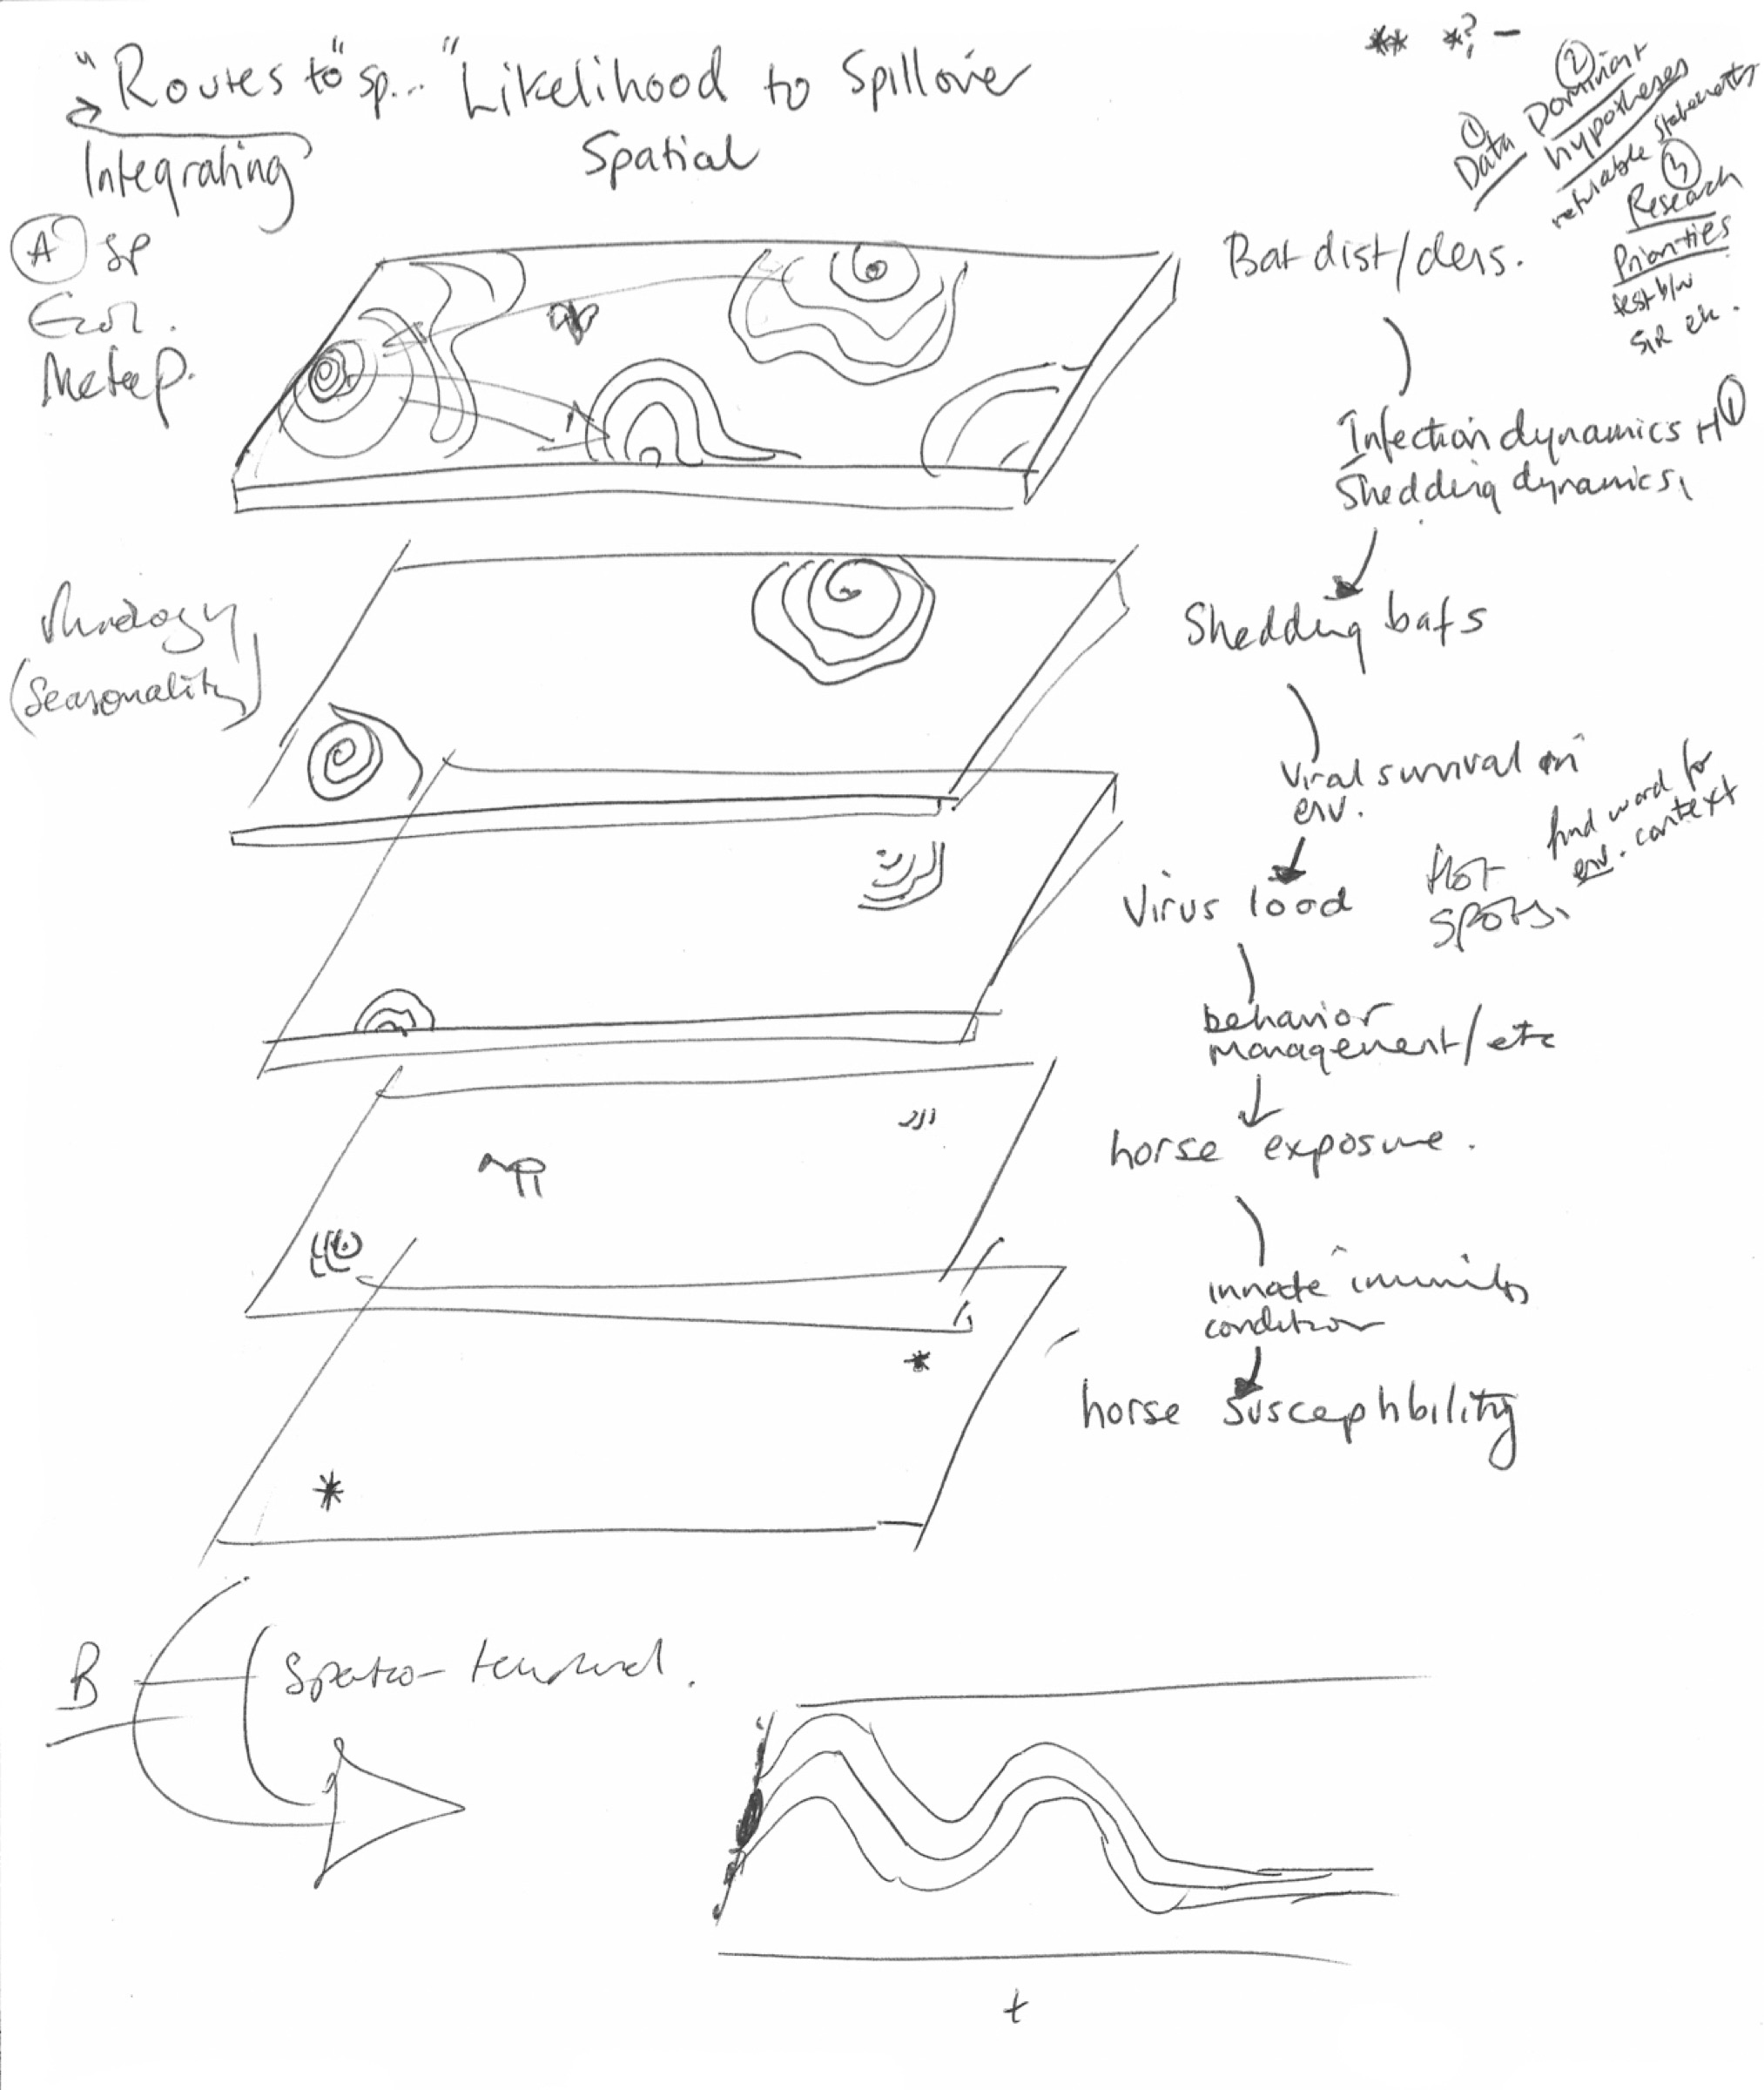 When Raina Plowright started looking at the many factors that influence the spillover potential of viruses like Hendra and Nipah, she began envisioning the route a virus must take as being punctuated by a series of layers whose holes can open or close to make transmission easier or harder. This is one of her early sketches of that concept.